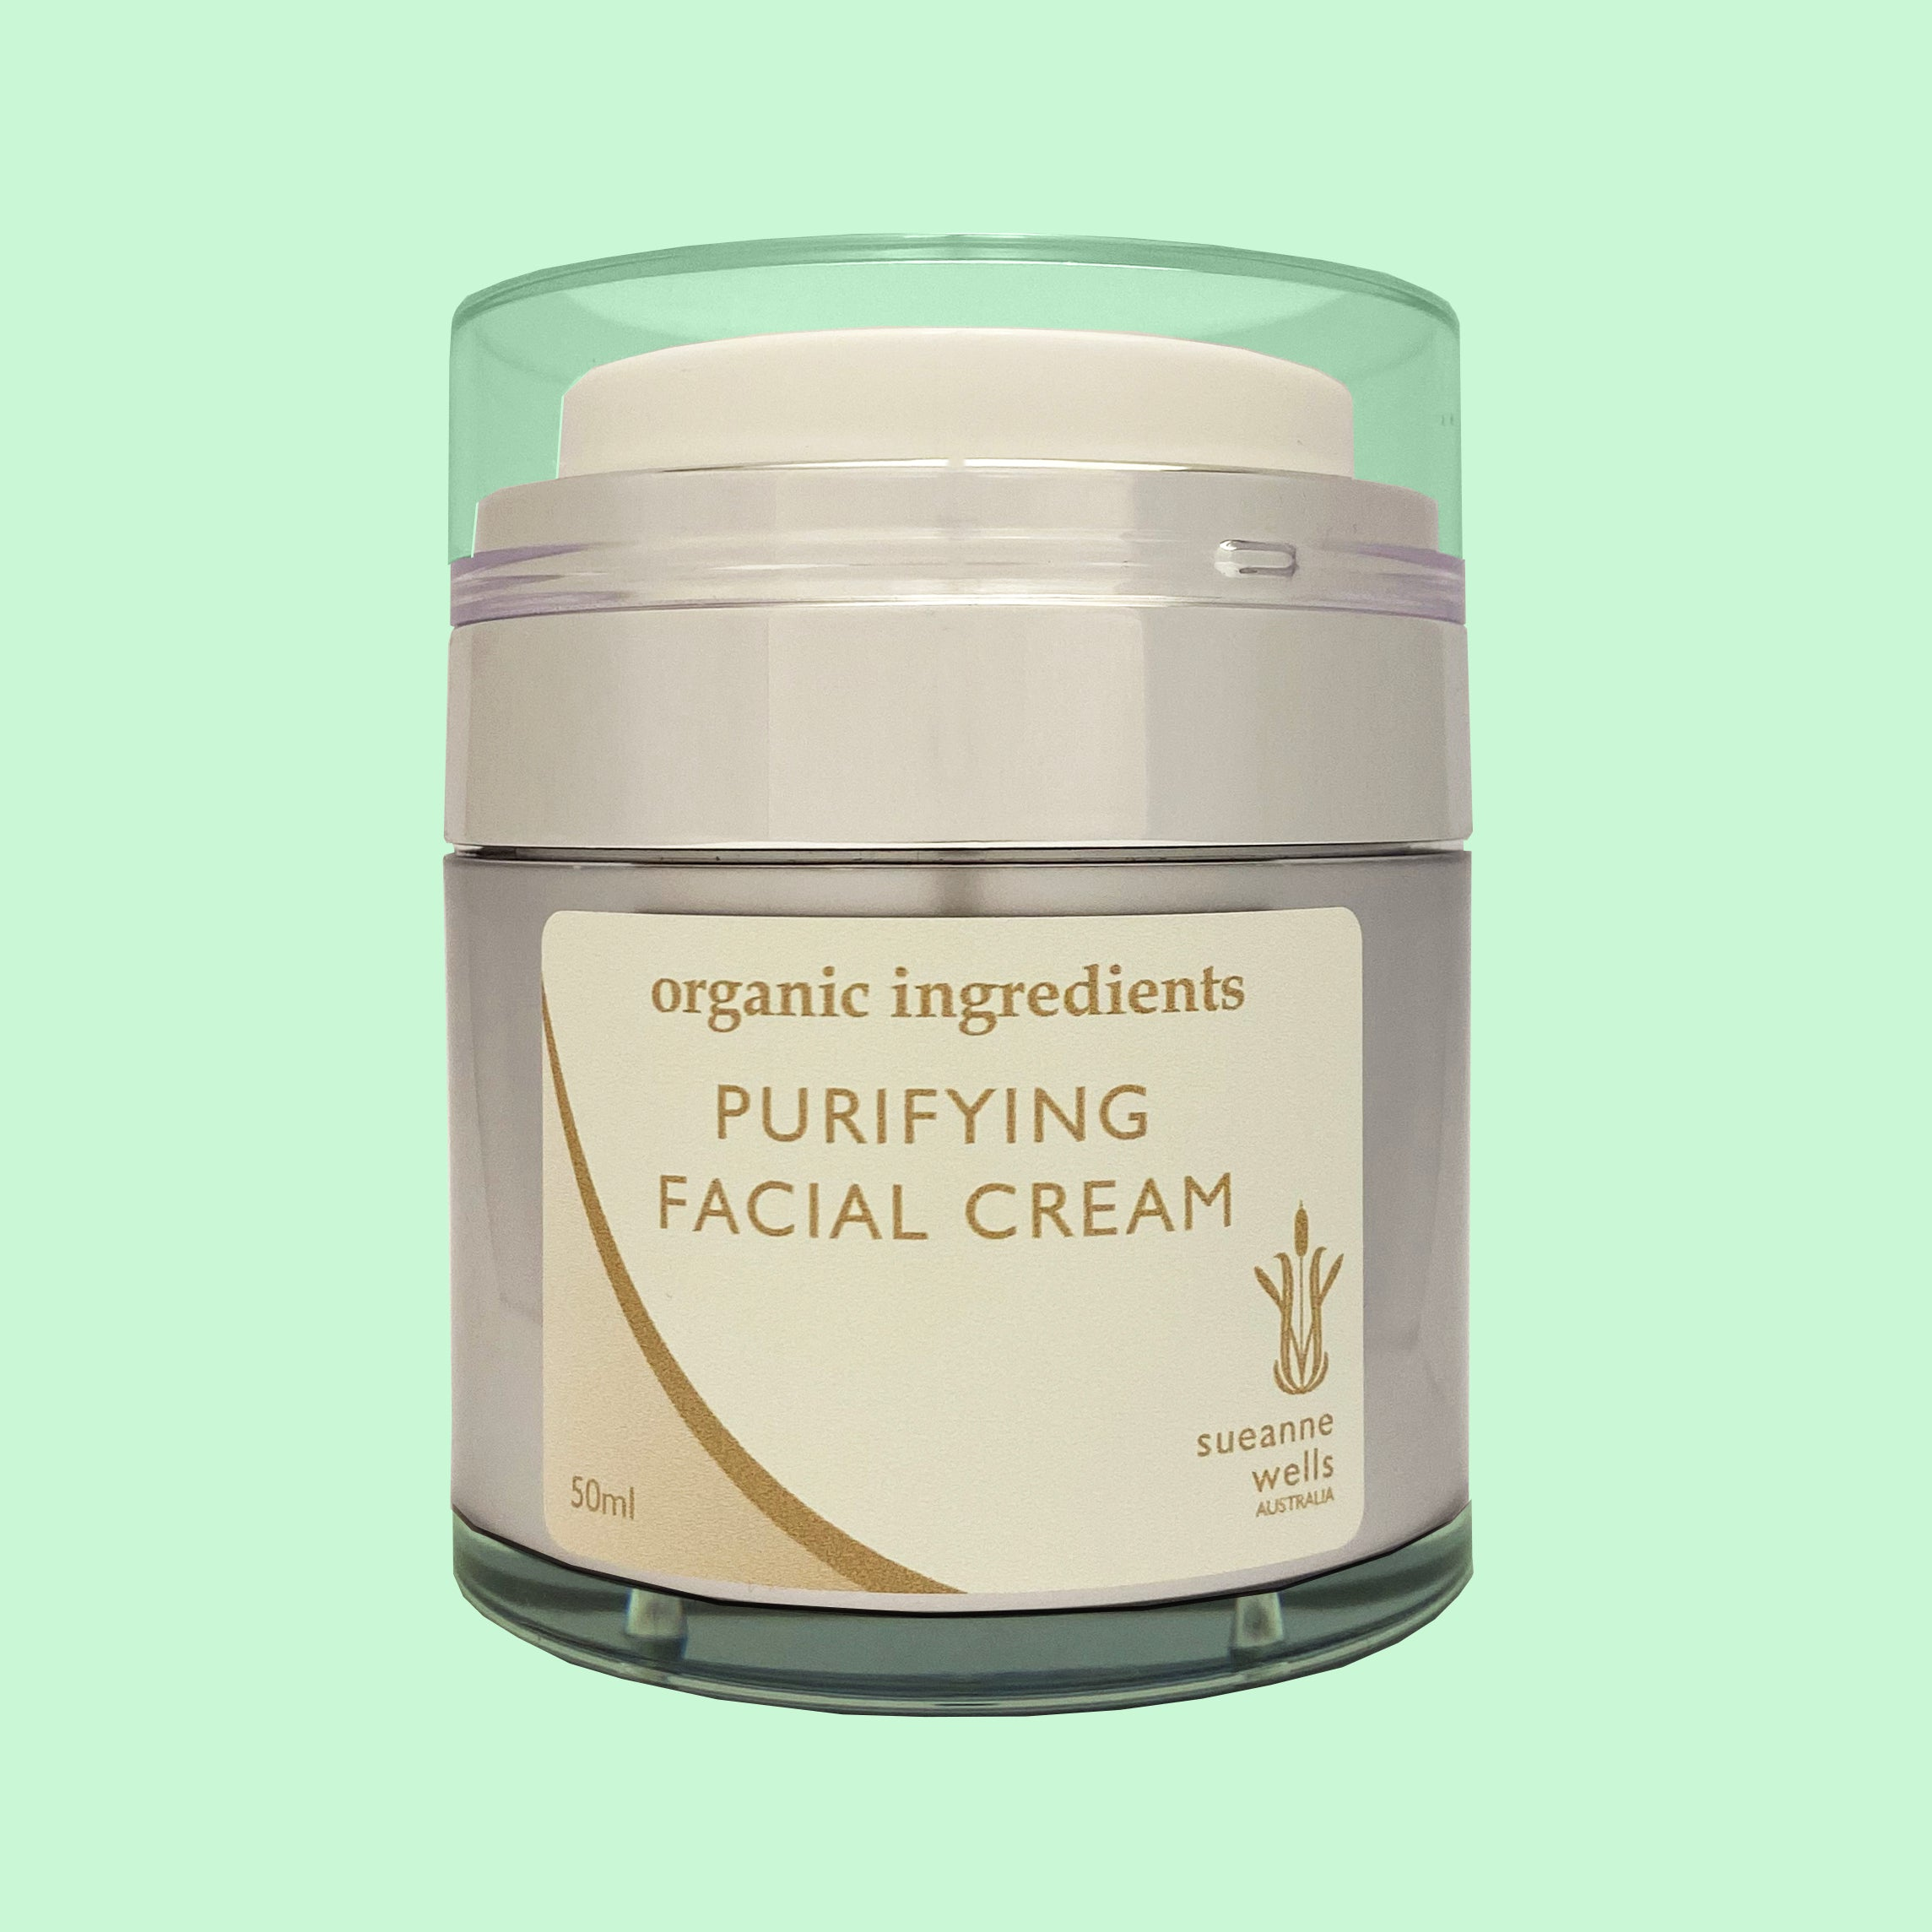 A light cream with amazing purifying and antioxidant properties. Dramatically transforms the look and feel of your skin. Contains Aloe Vera, Marine Collagen, Rice Bran Oil, Rose Hip Oil, Hyaluronic, Vitamin E, Green Tea Extract & Coenzyme Q10, Vegetable Glycerin, Plantaserv S, Rose Geranium Essential Oil. Skin Care, Chemical And Preservative Free, Plant Based, Australian Made.